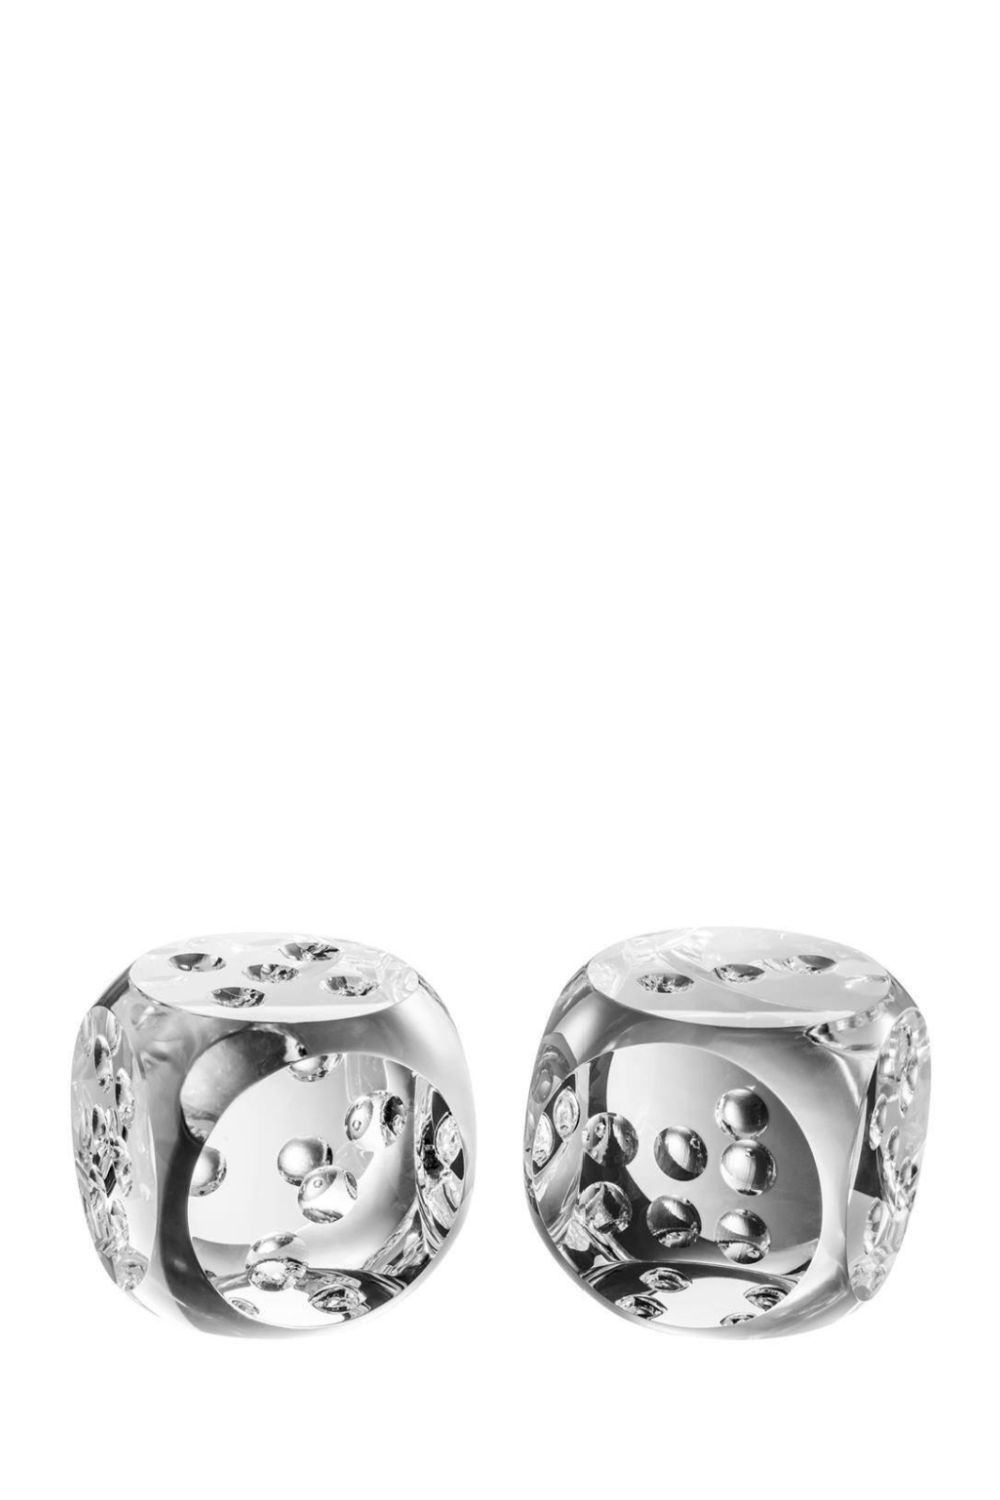 Glass Dice (set of 2) | Eichholtz Tradizone | OROA Modern Furniture